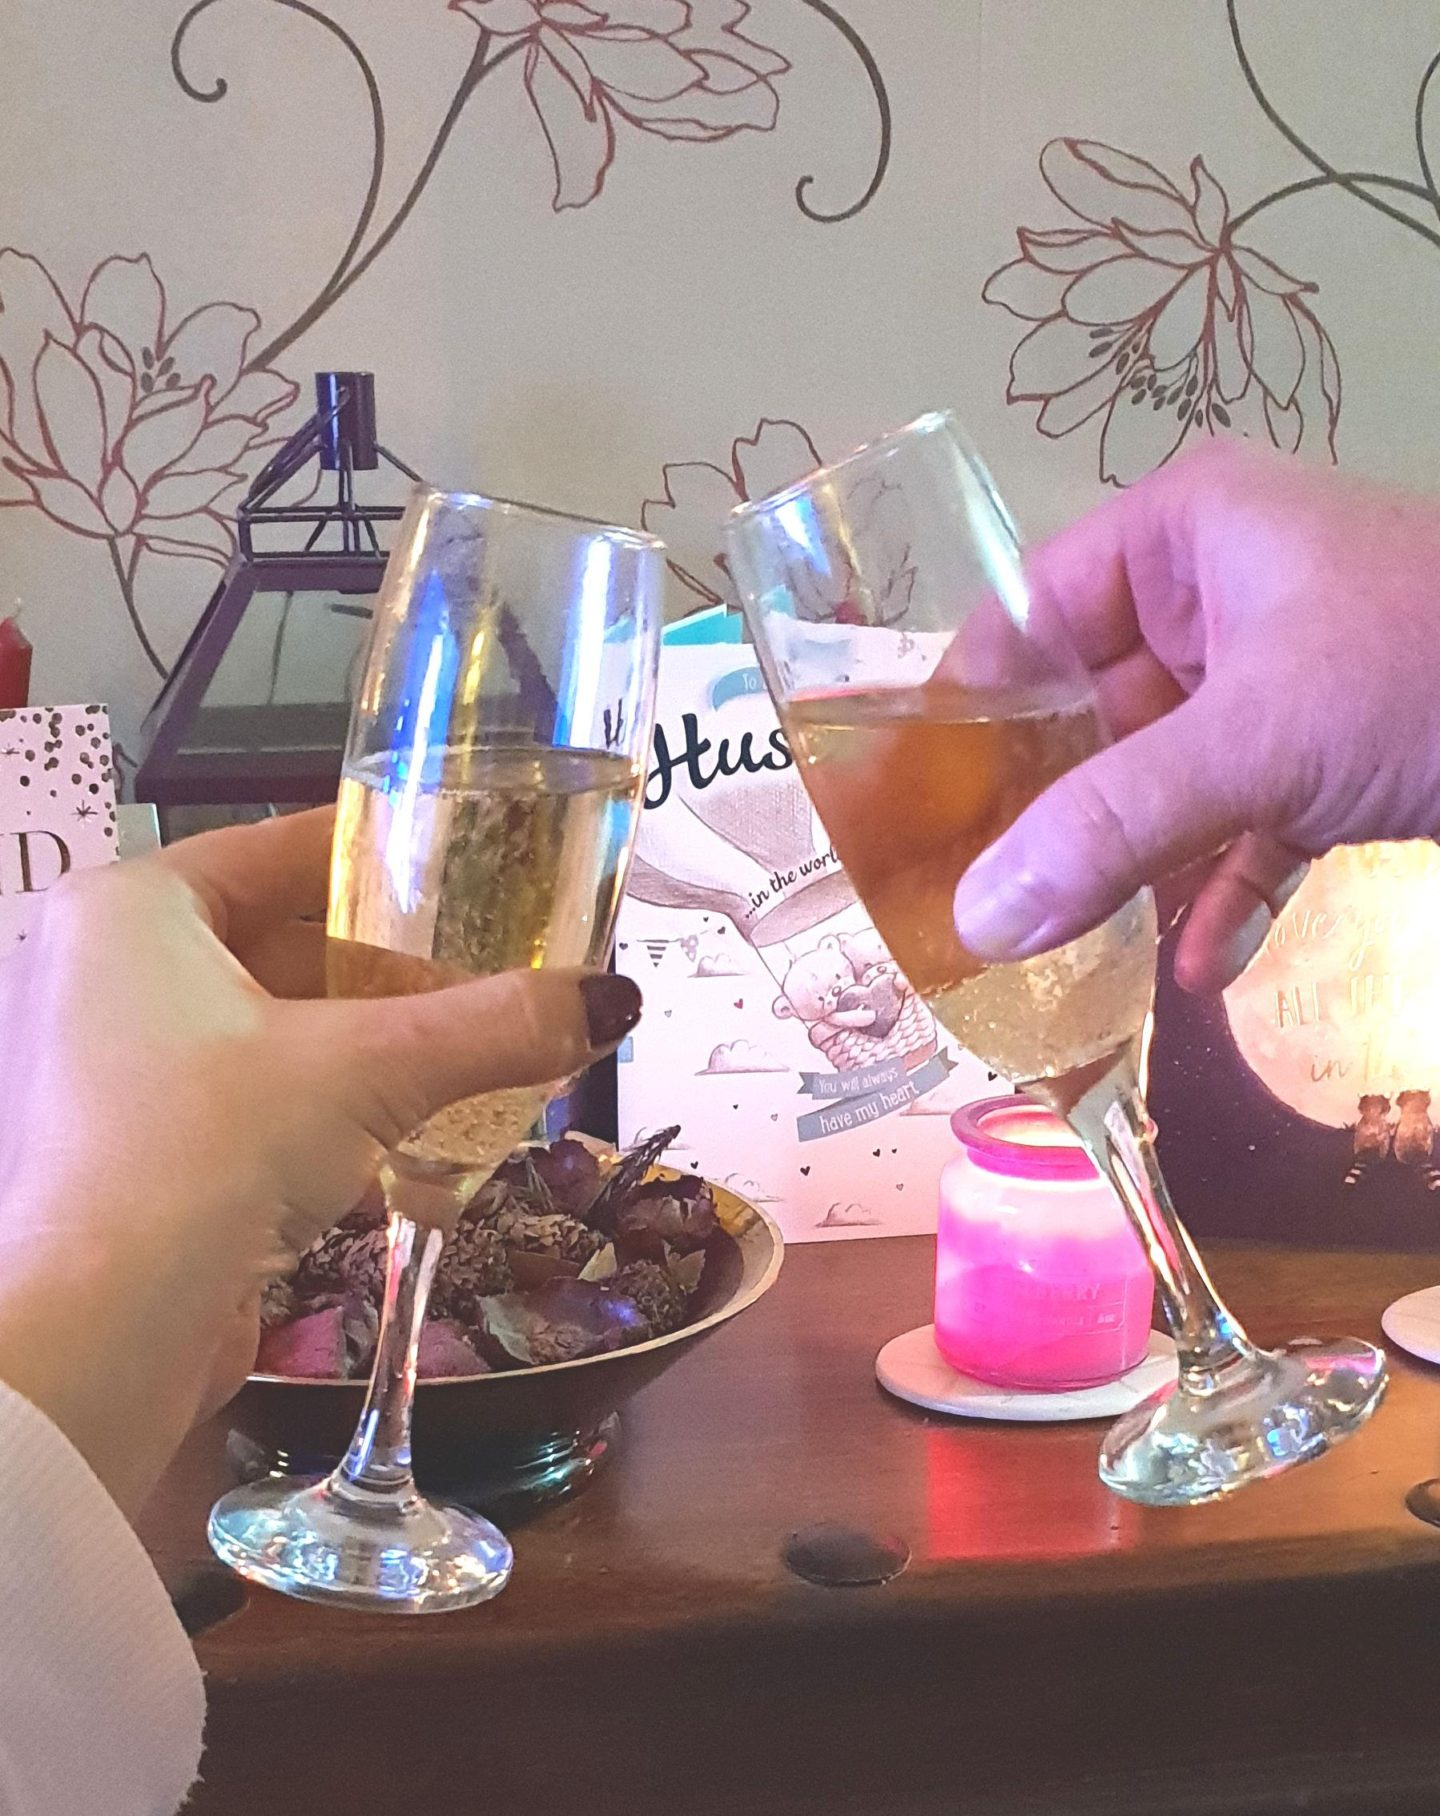 In this month's catch up I'm toasting my husband's birthday with a glass of moet